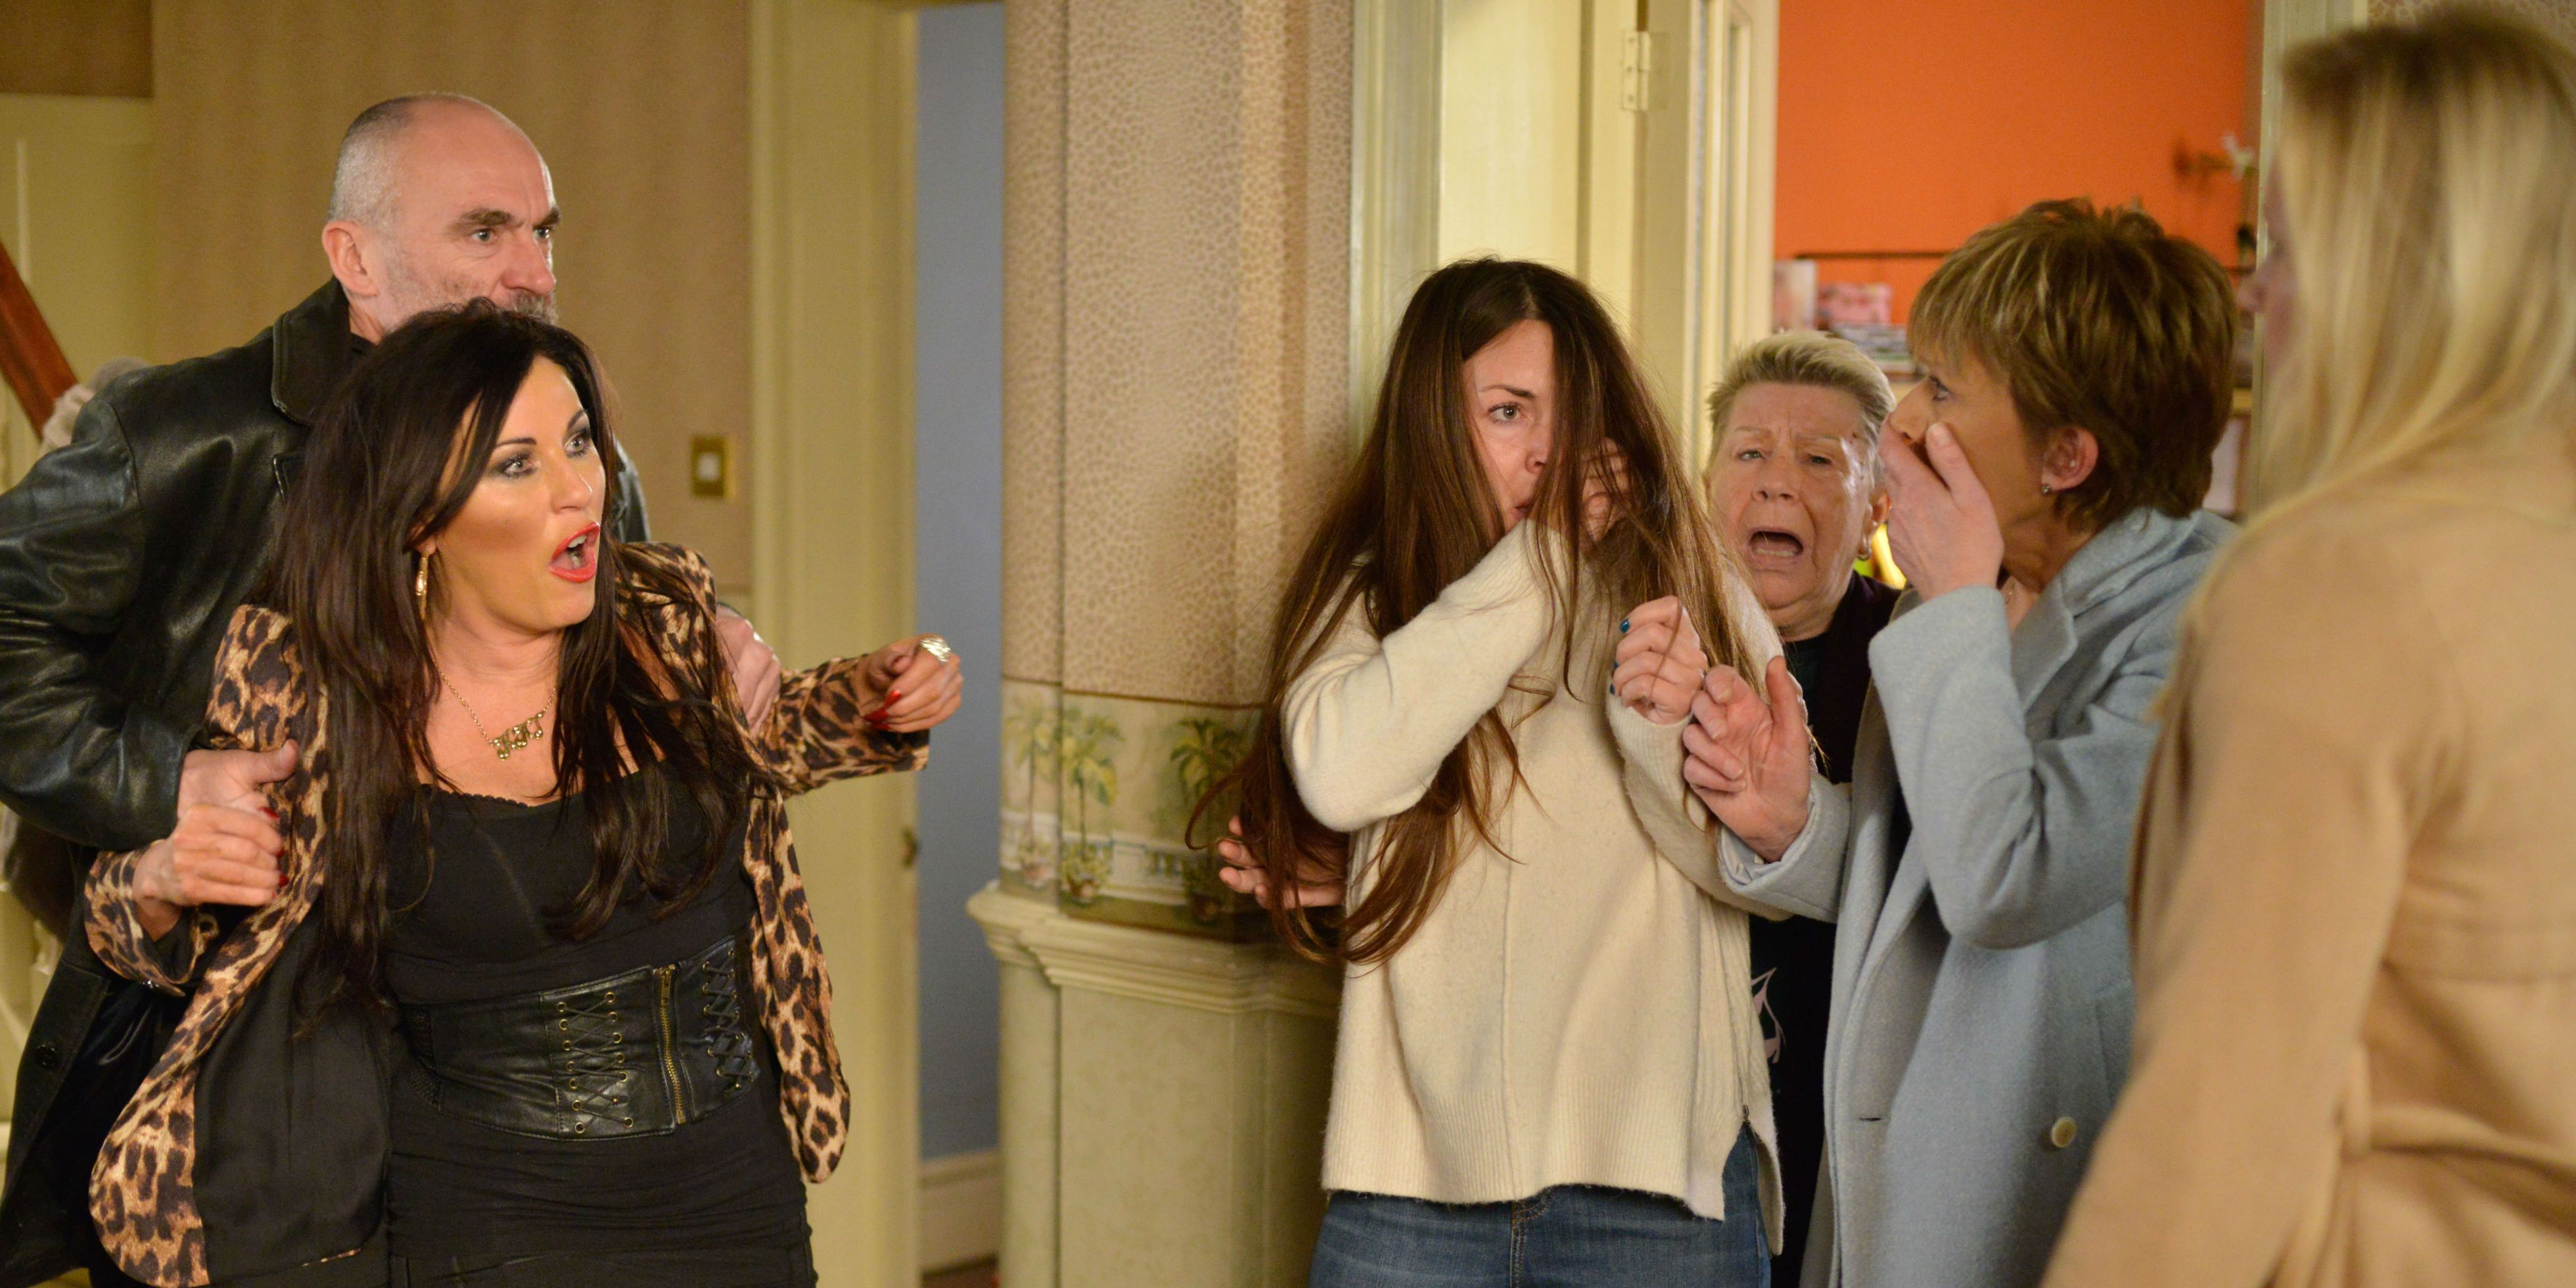 EMBARGO 30/1 The Slaters face Annie in EastEnders